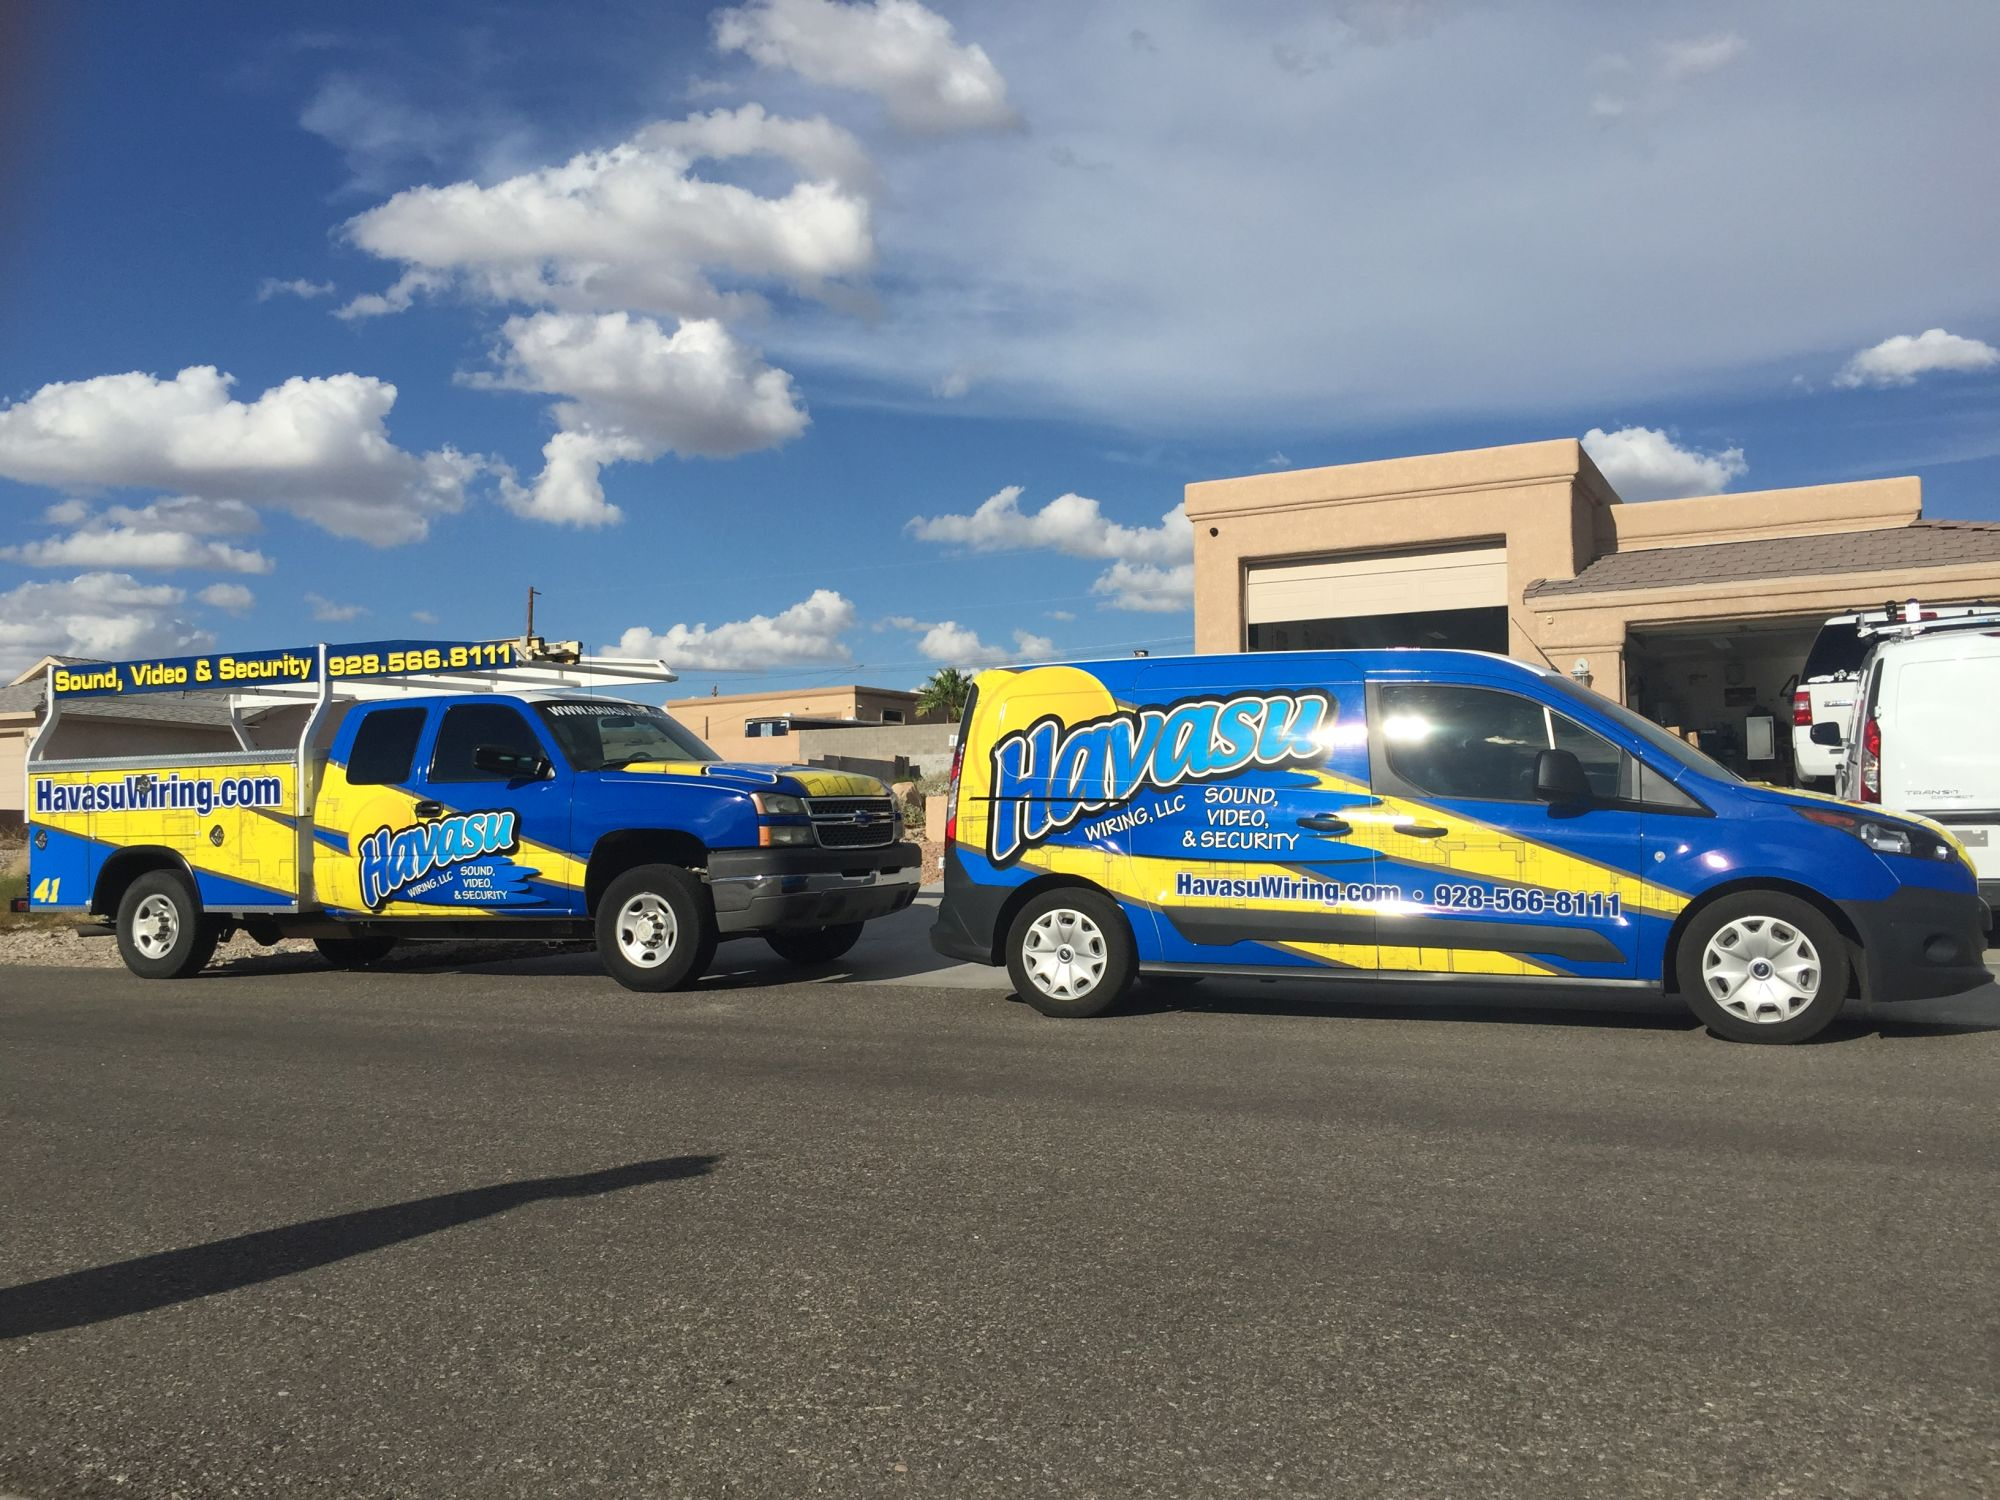 Havasu Wiring Smart Homes Sound Security Cameras And All Commercial Motor Lorne Created Llc To Give More Attention Detail Then The Big Box Retailers His Experience In Of Running Large Sales Installation